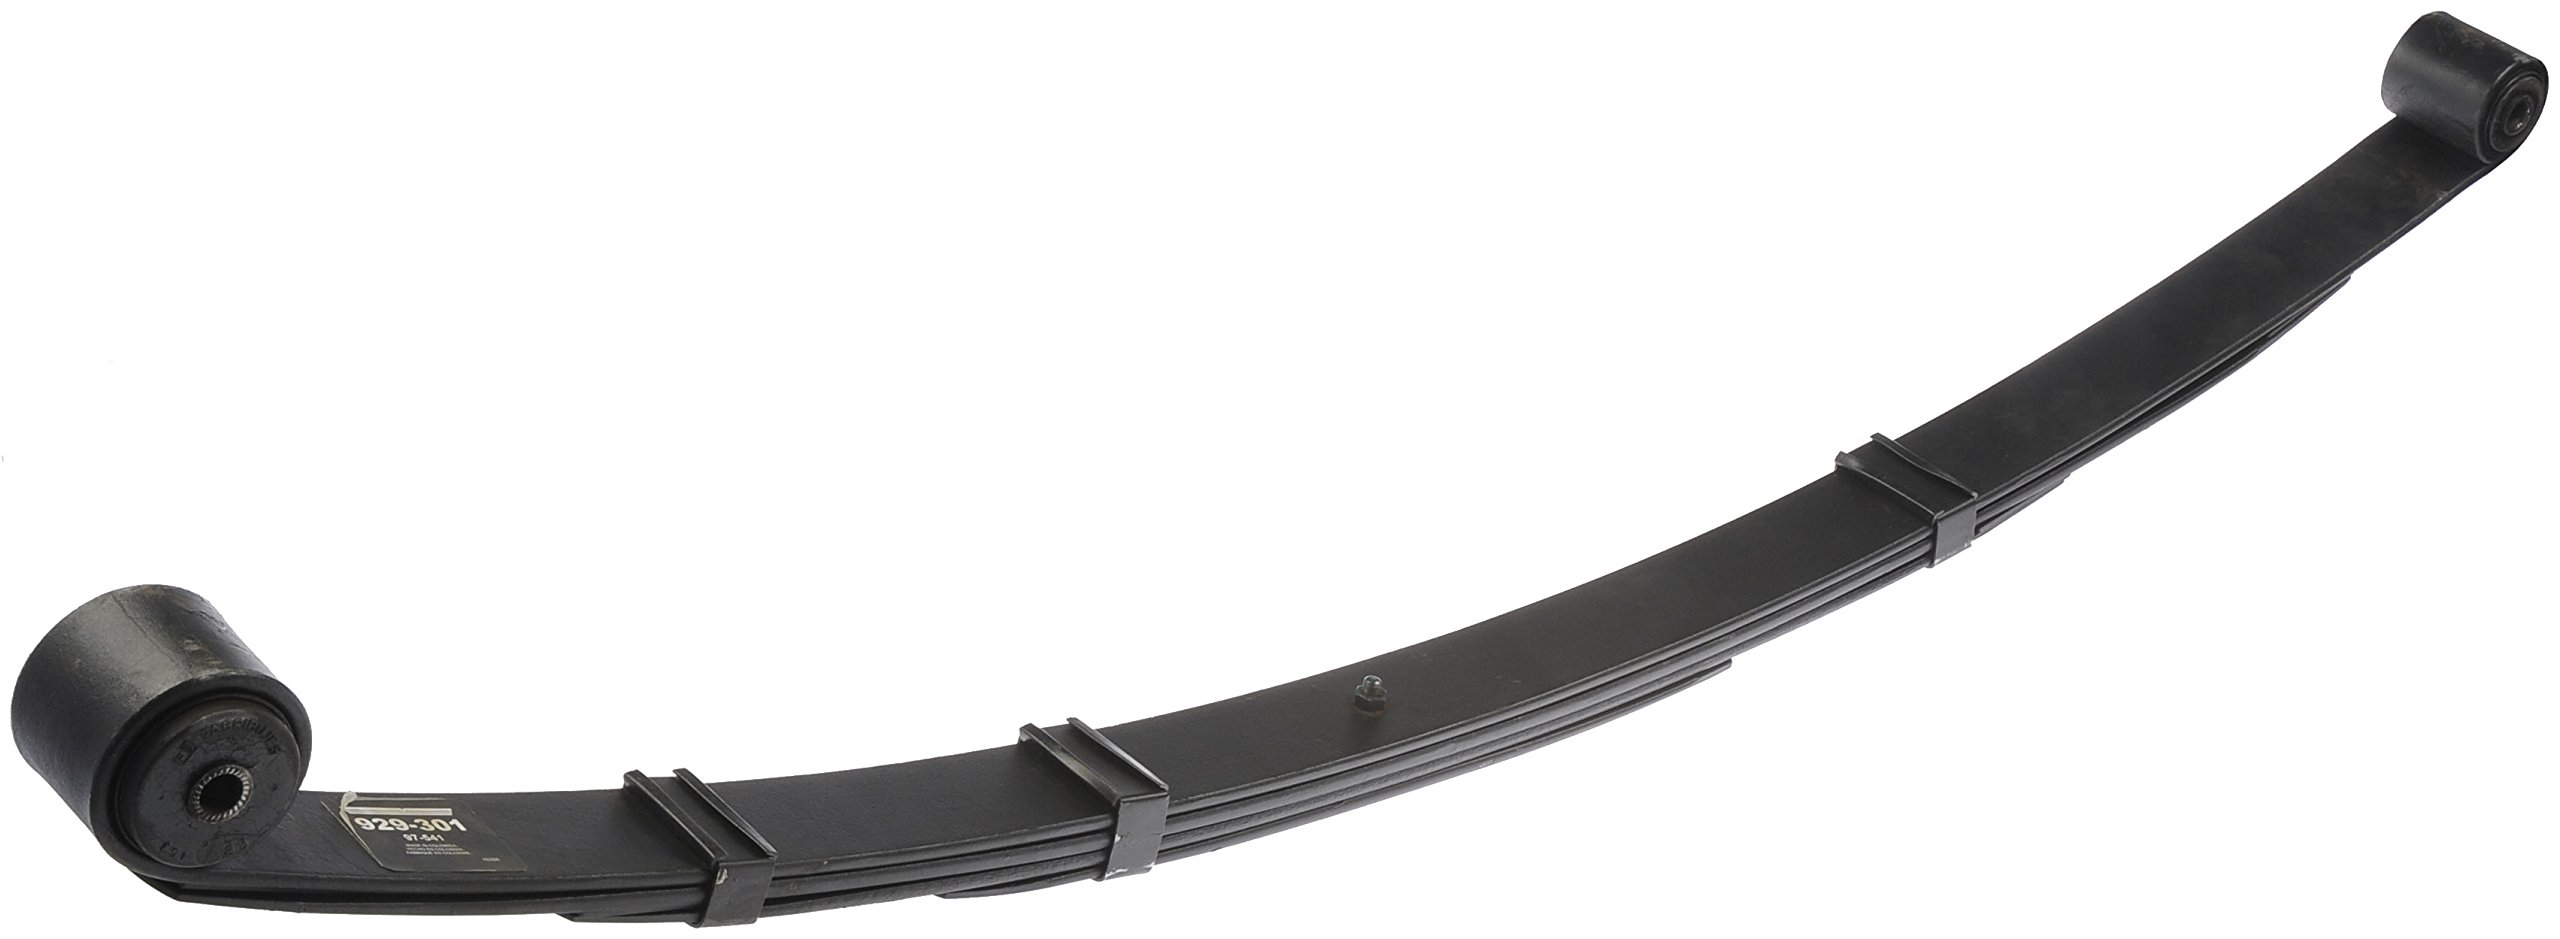 Dorman 929-301 Leaf Spring for Jeep Cherokee, Pack of 1 by Dorman